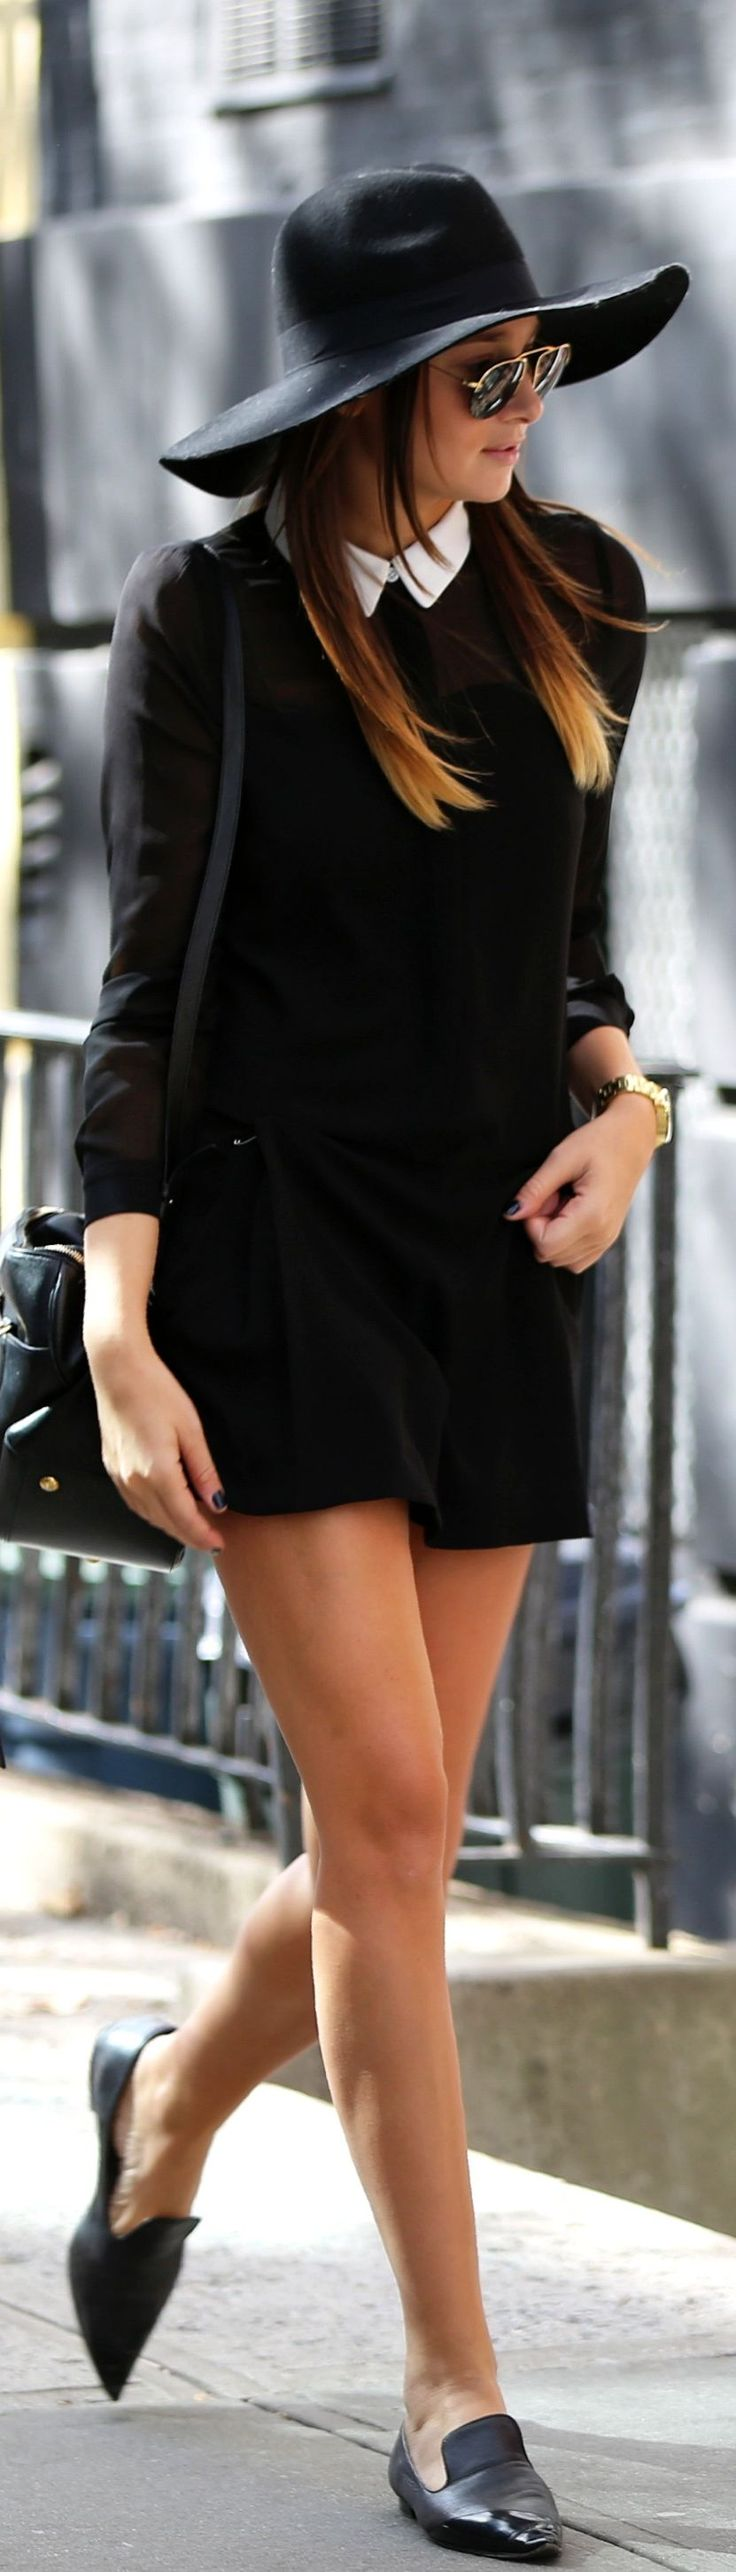 black dress, white peter pan collar, flats, floppy hat